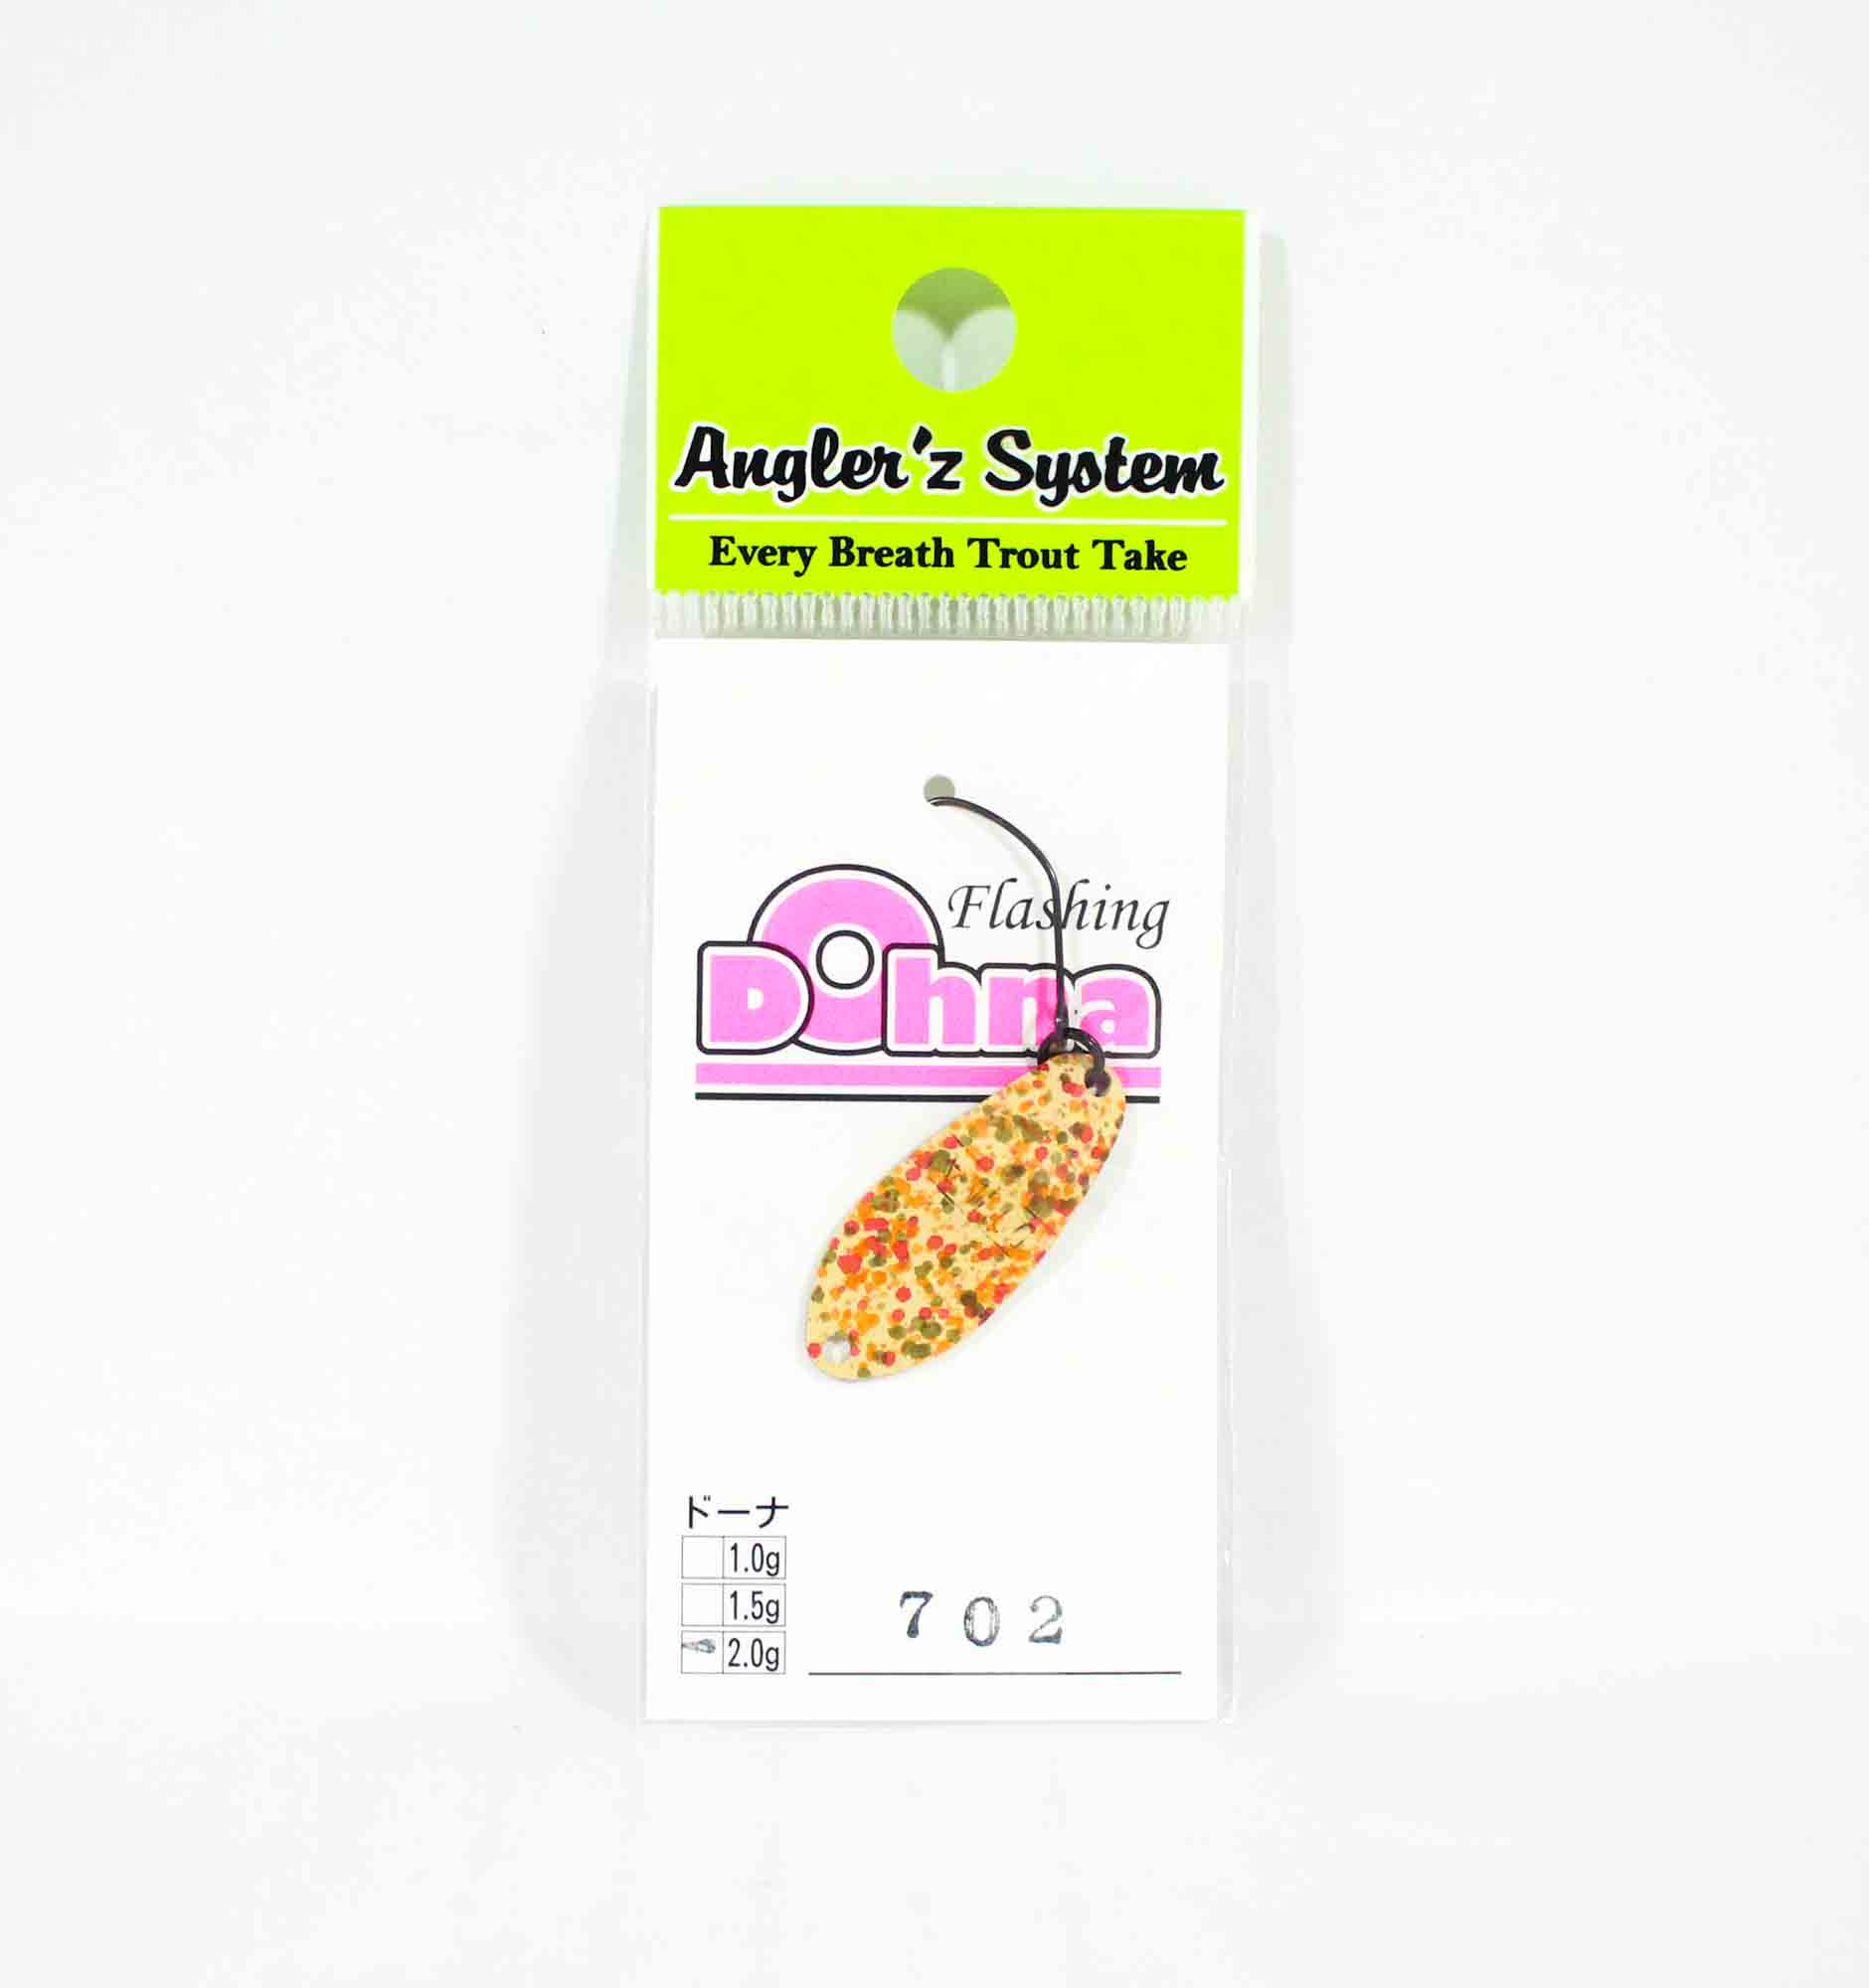 Anglers System Antem Dohna 2.0 grams Spoon Sinking Lure 702 (6214)